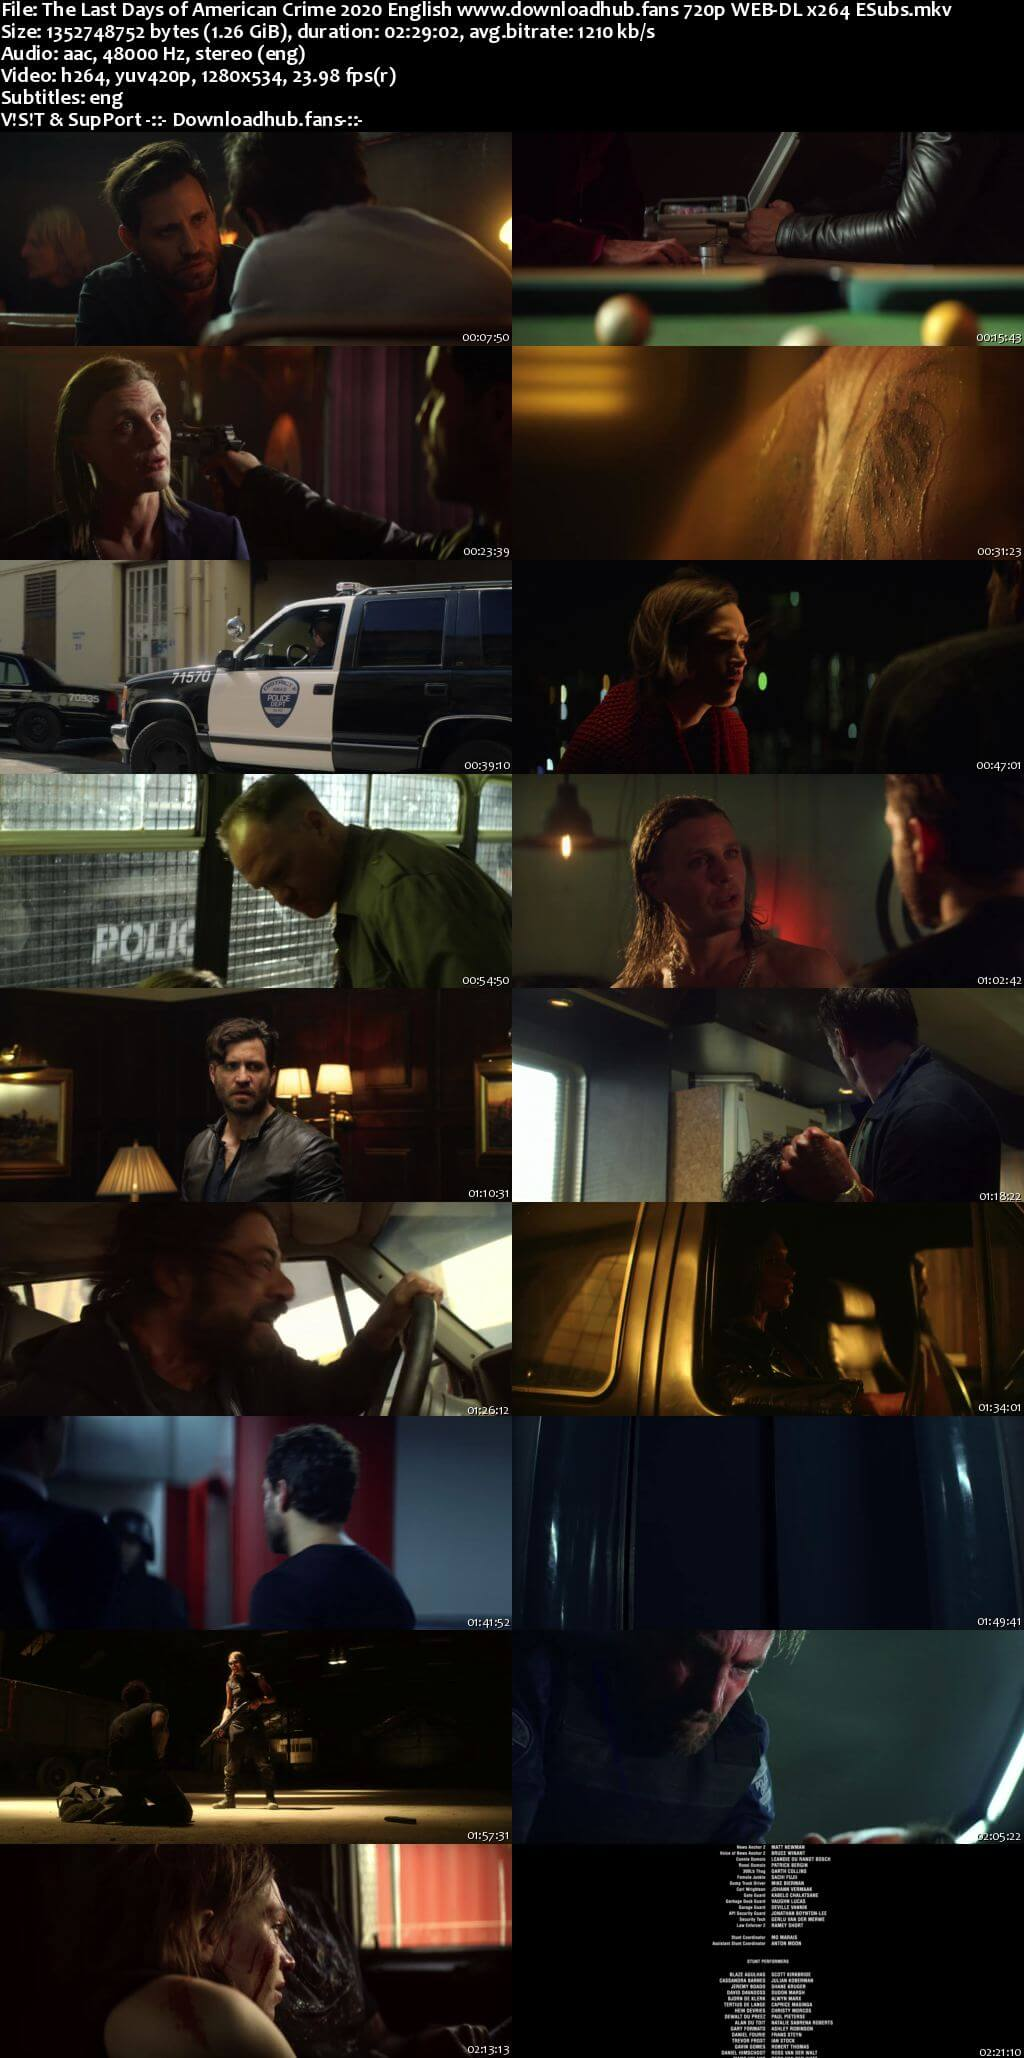 The Last Days of American Crime 2020 English 720p NF Web-DL 1.2GB ESubs